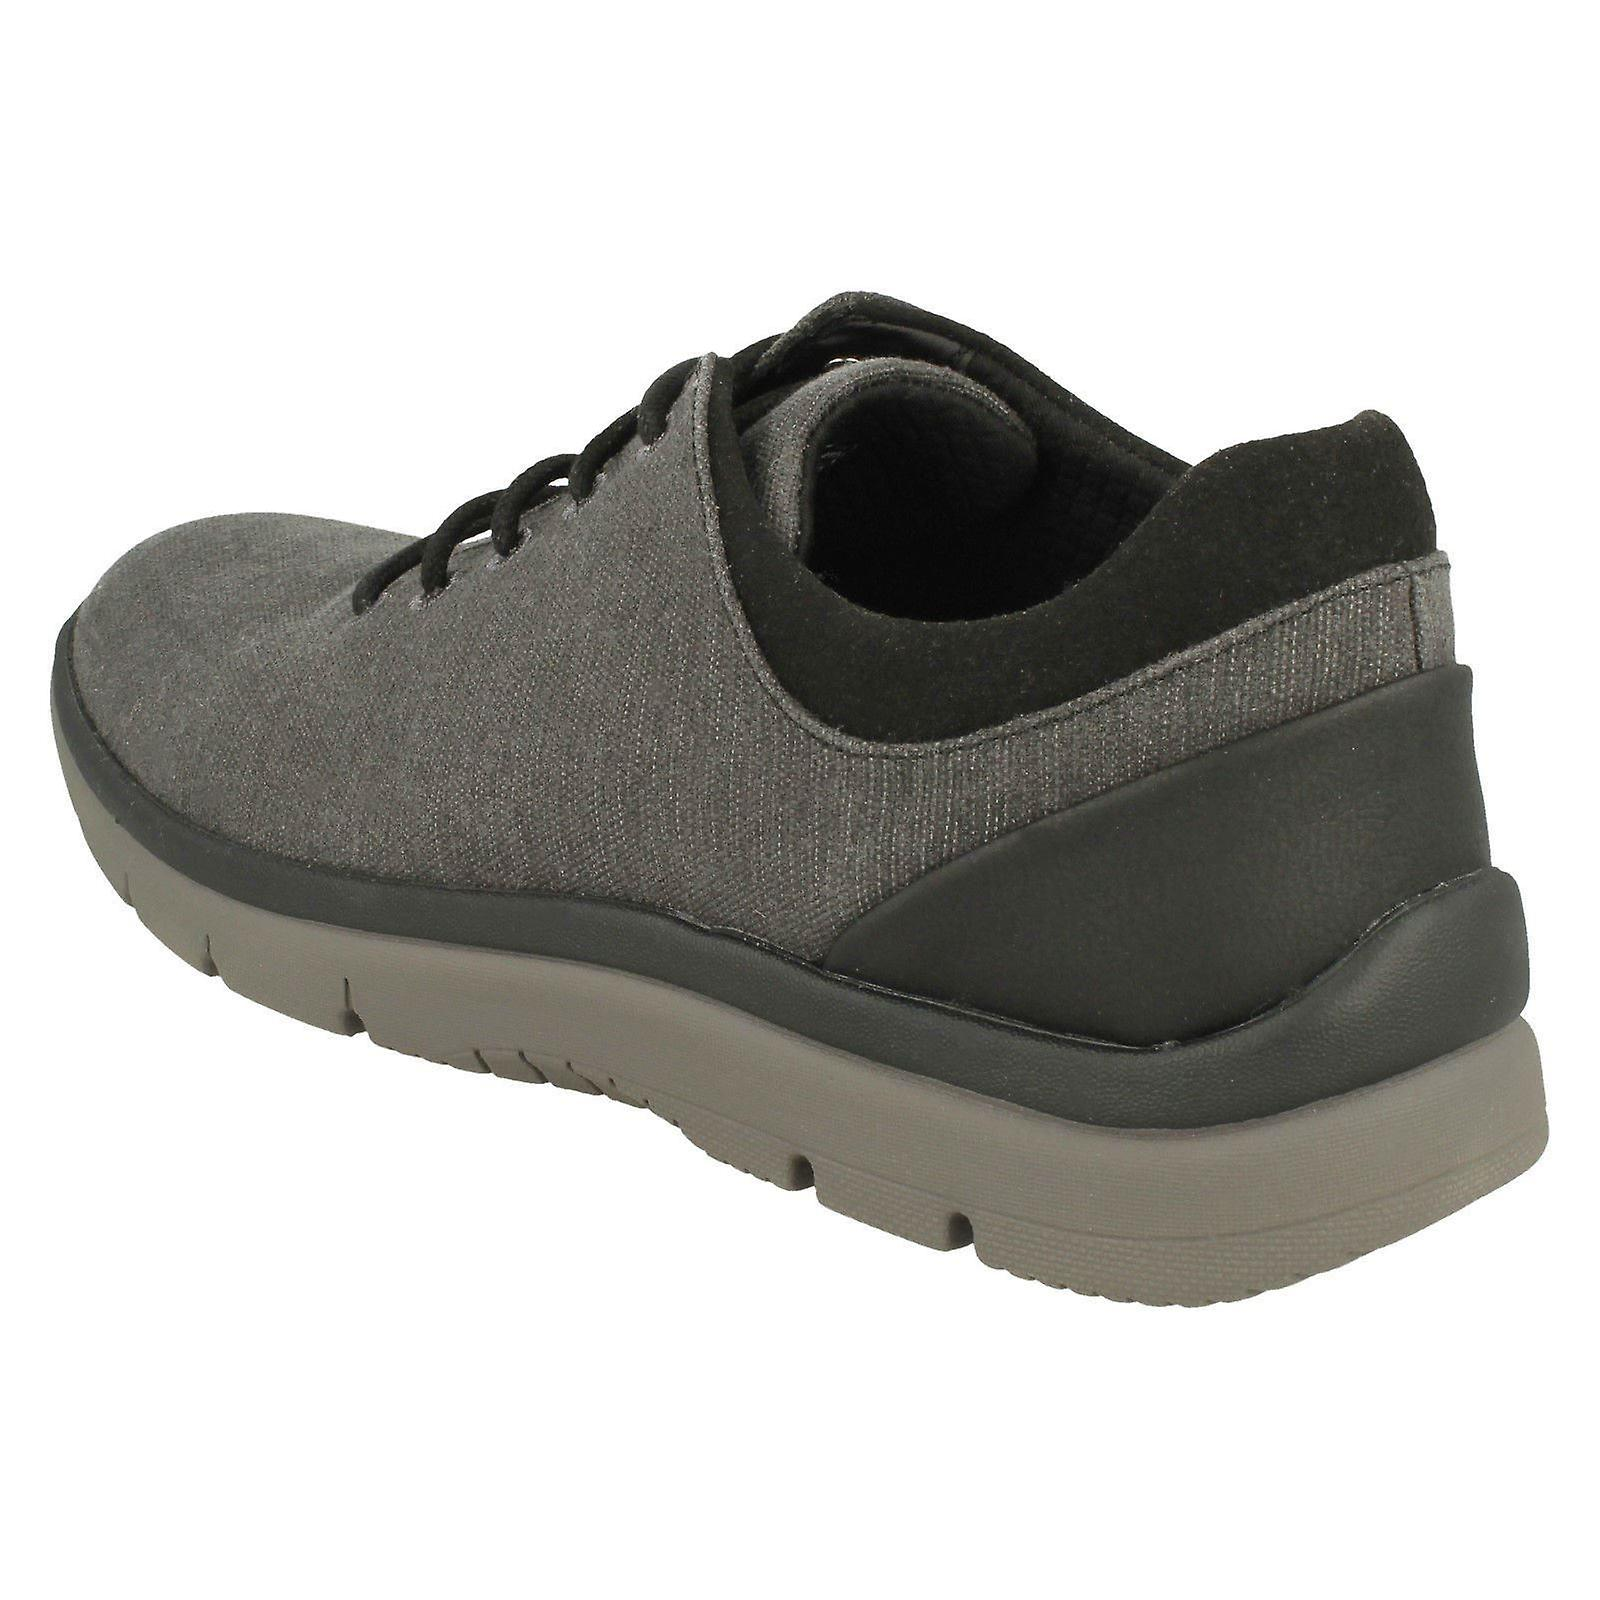 Mens Clarks Casual Textile Lace Up Fastening Trainers /'Tunsil Ace/'